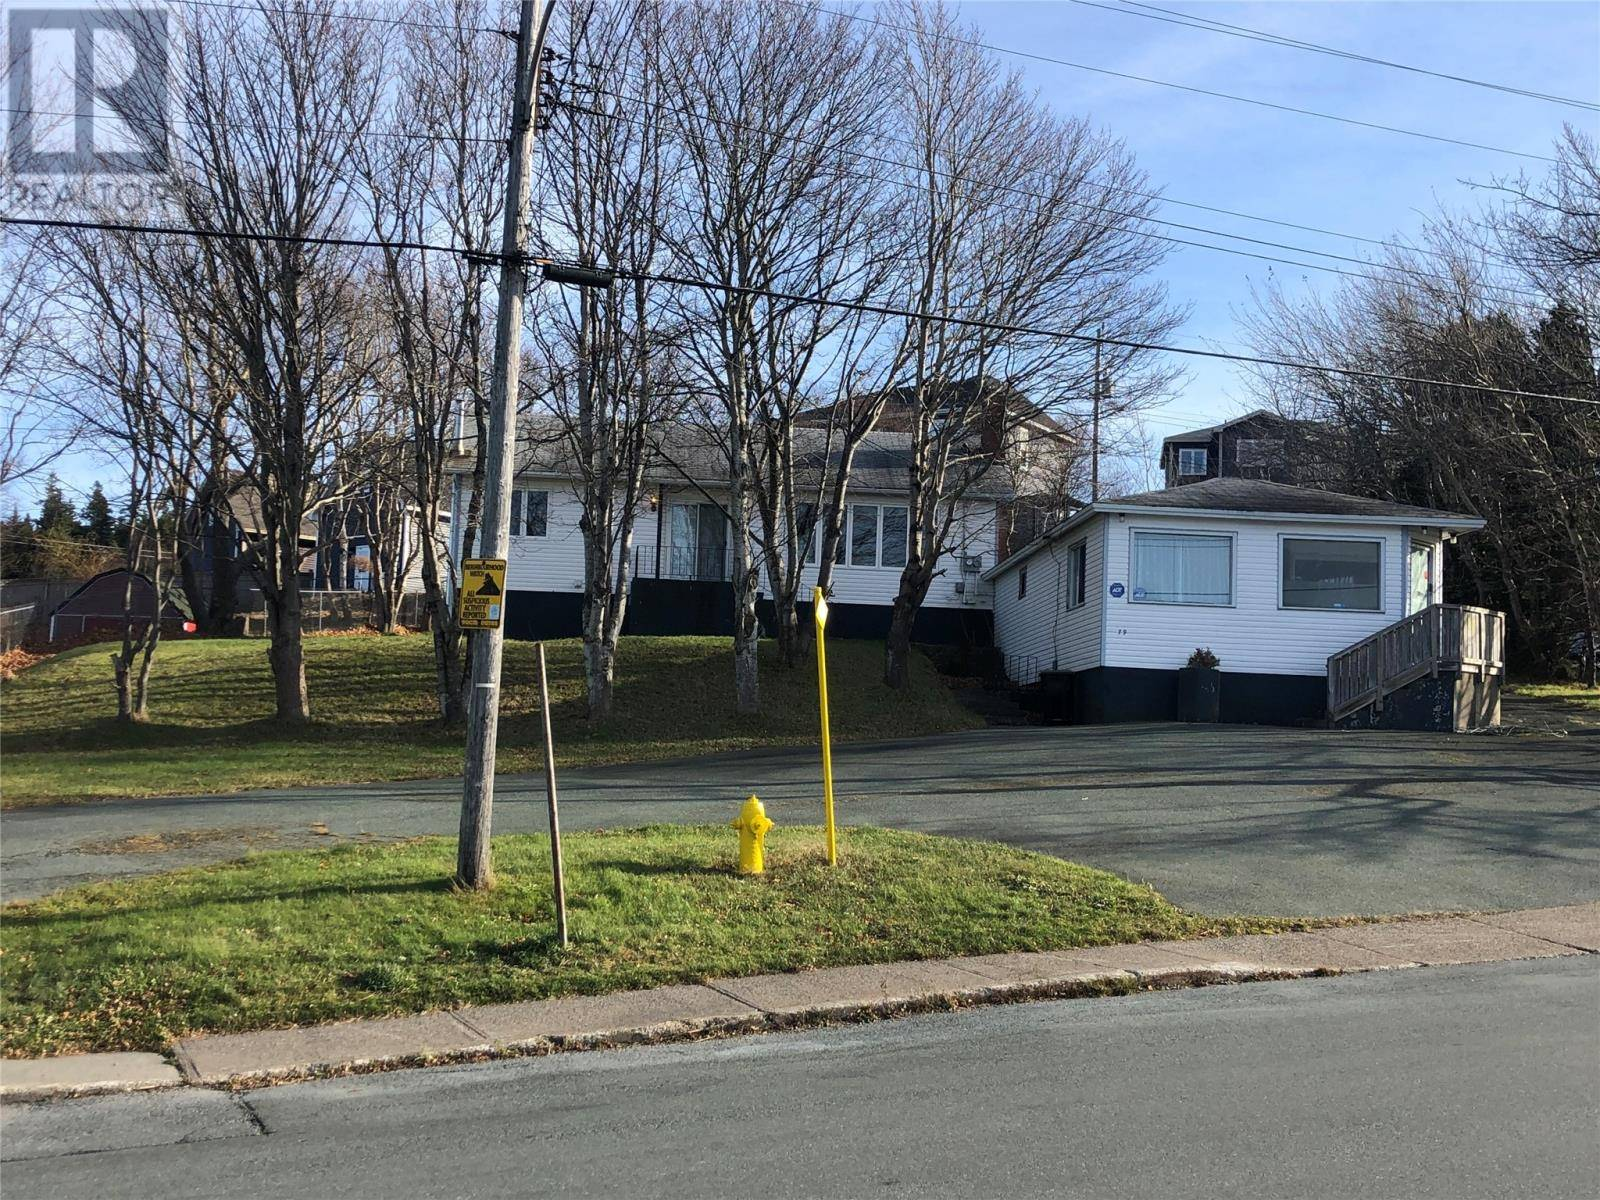 House for sale at 79 Old Petty Harbour Rd St. John's Newfoundland - MLS: 1207359